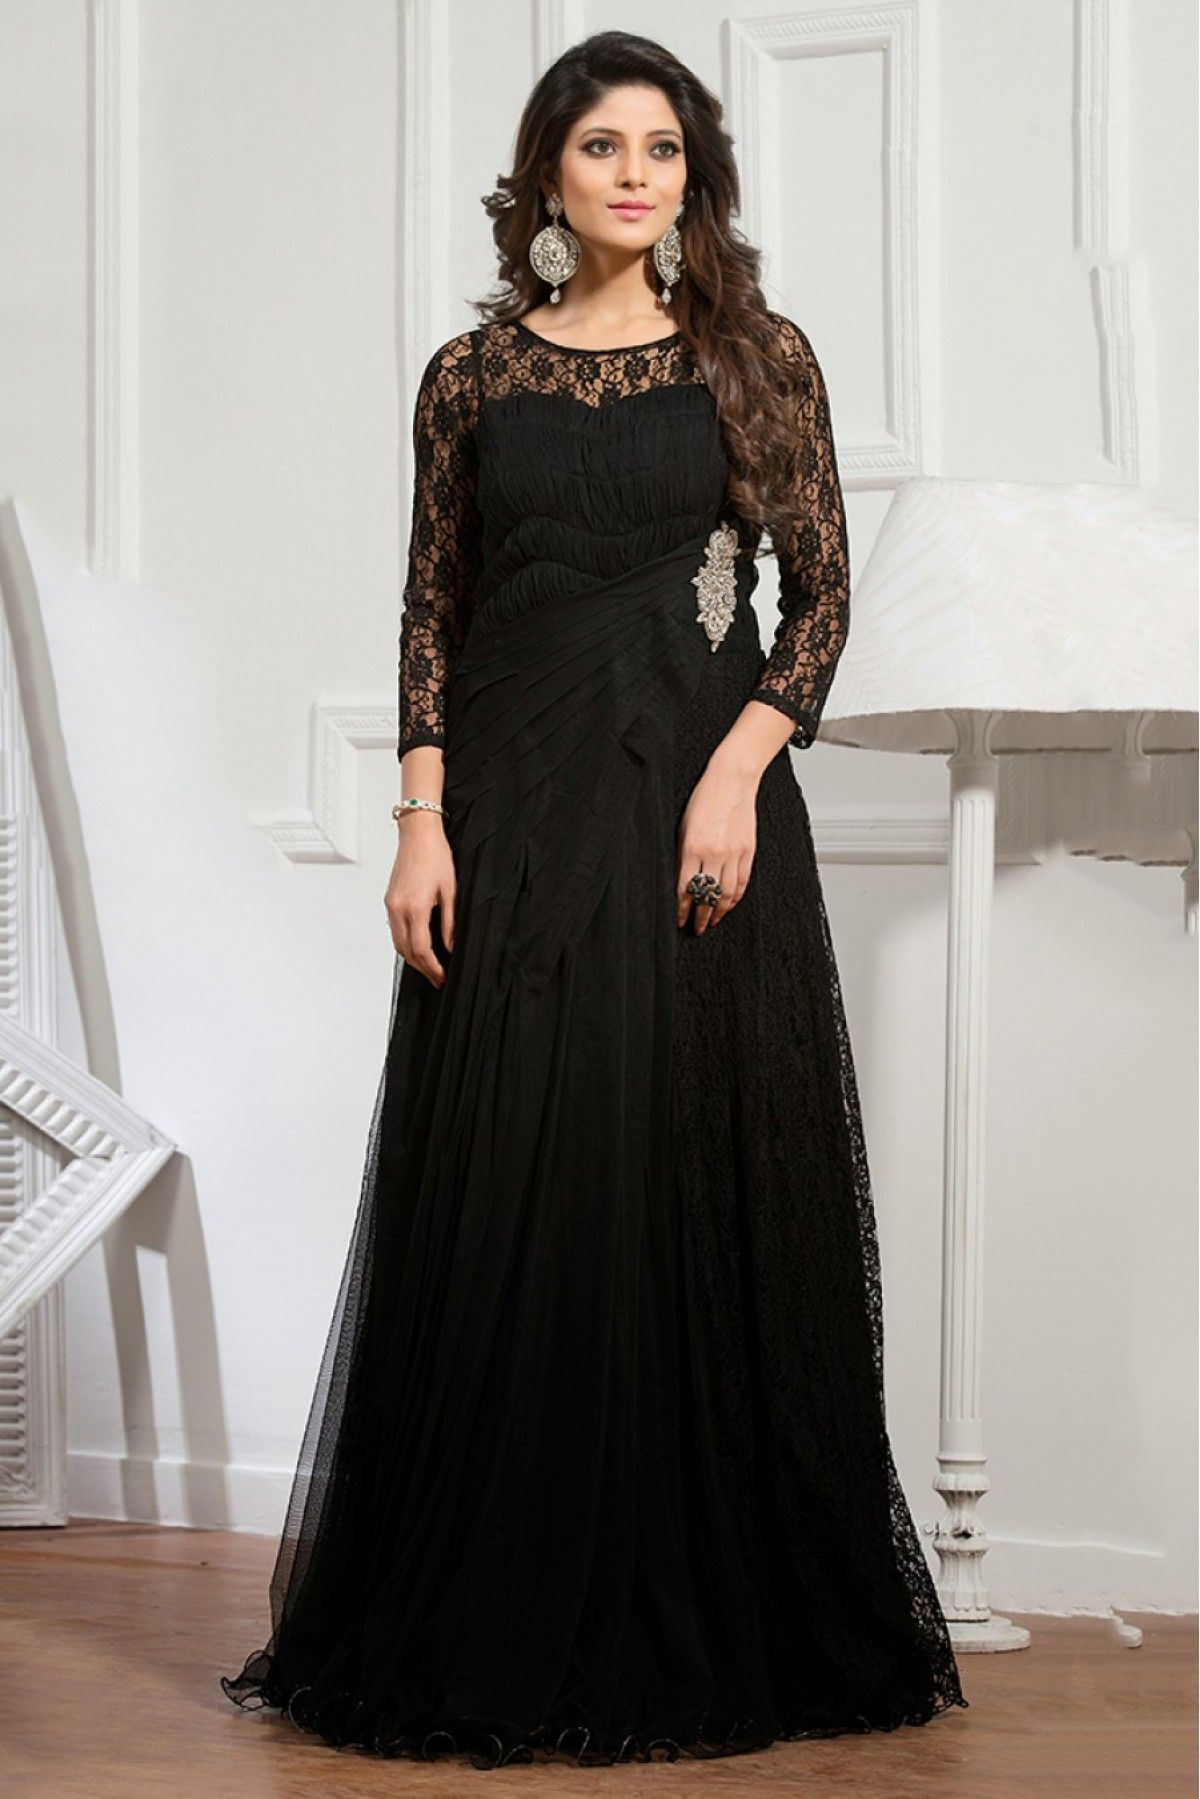 210ccdd7d0 Black Colour Net Fabric Designer Semi Stitched Gown Comes With Matching  Dupatta. This Gown Is Crafted With Stone Work. This Gown Comes as Semi  Stitched So ...